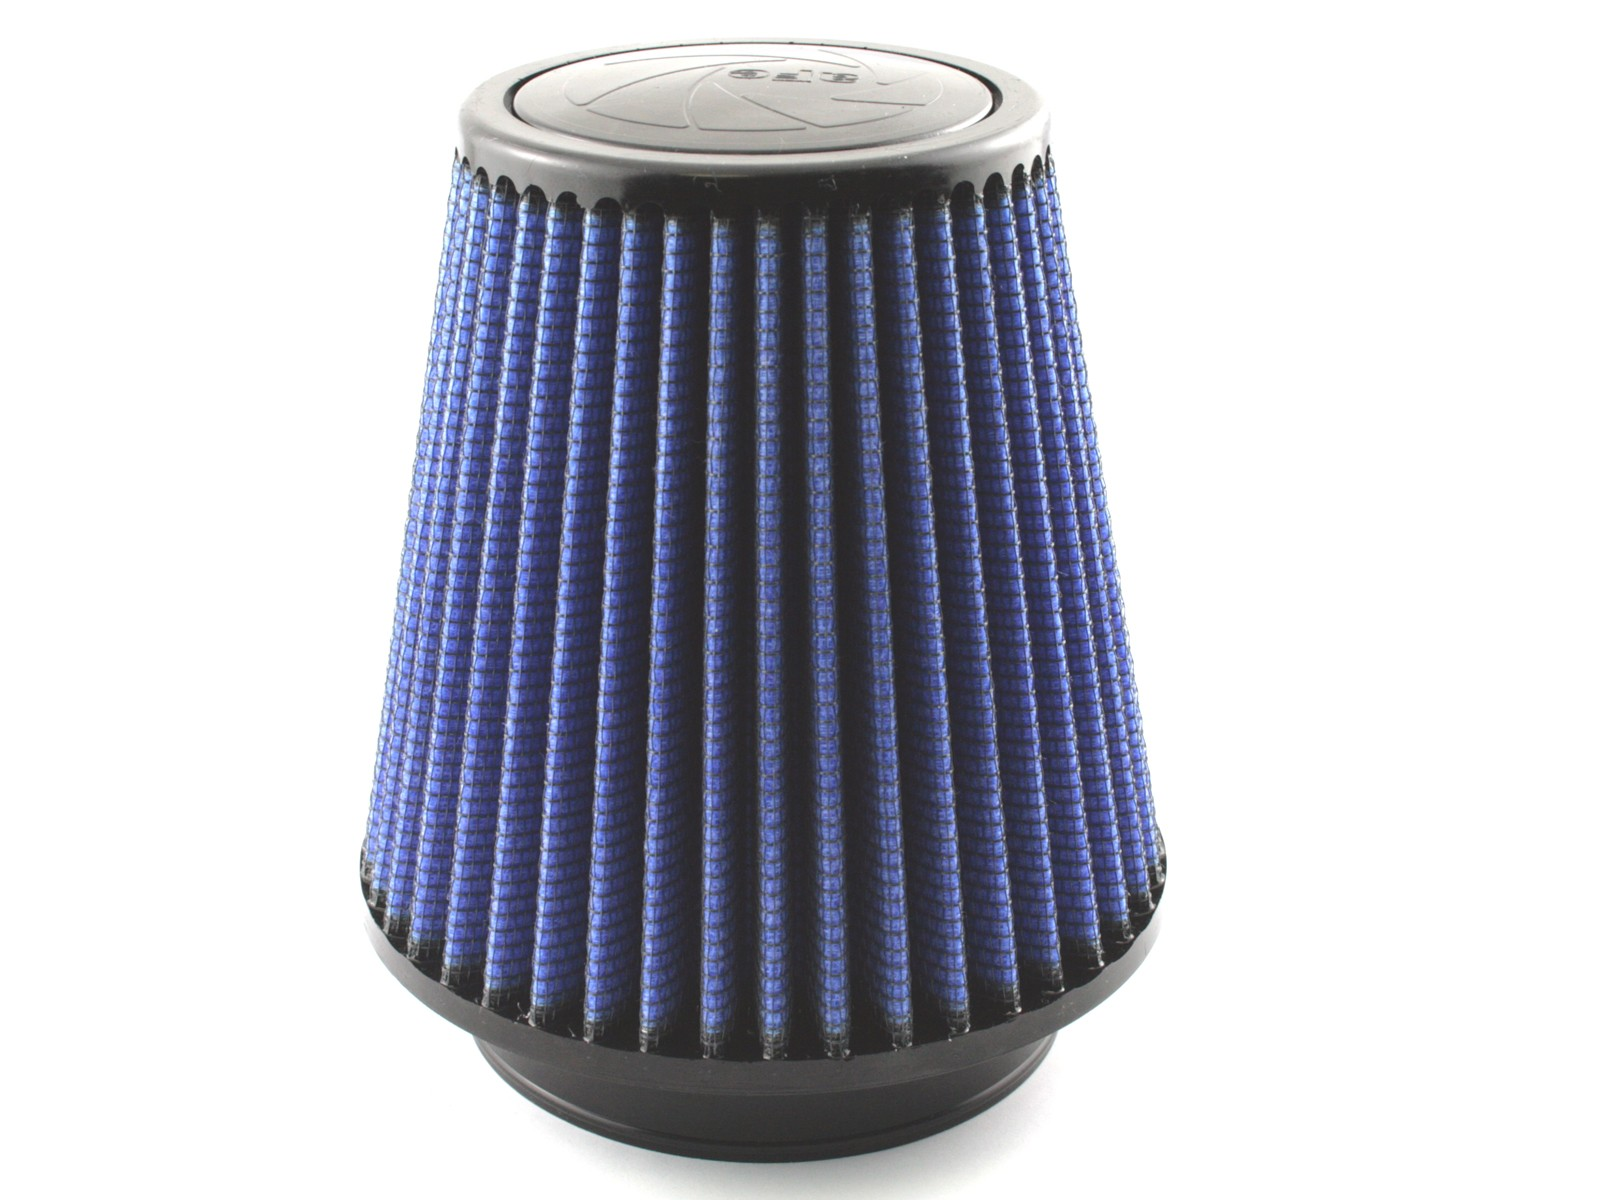 aFe POWER 24-40506 Magnum FLOW Pro 5R Air Filter